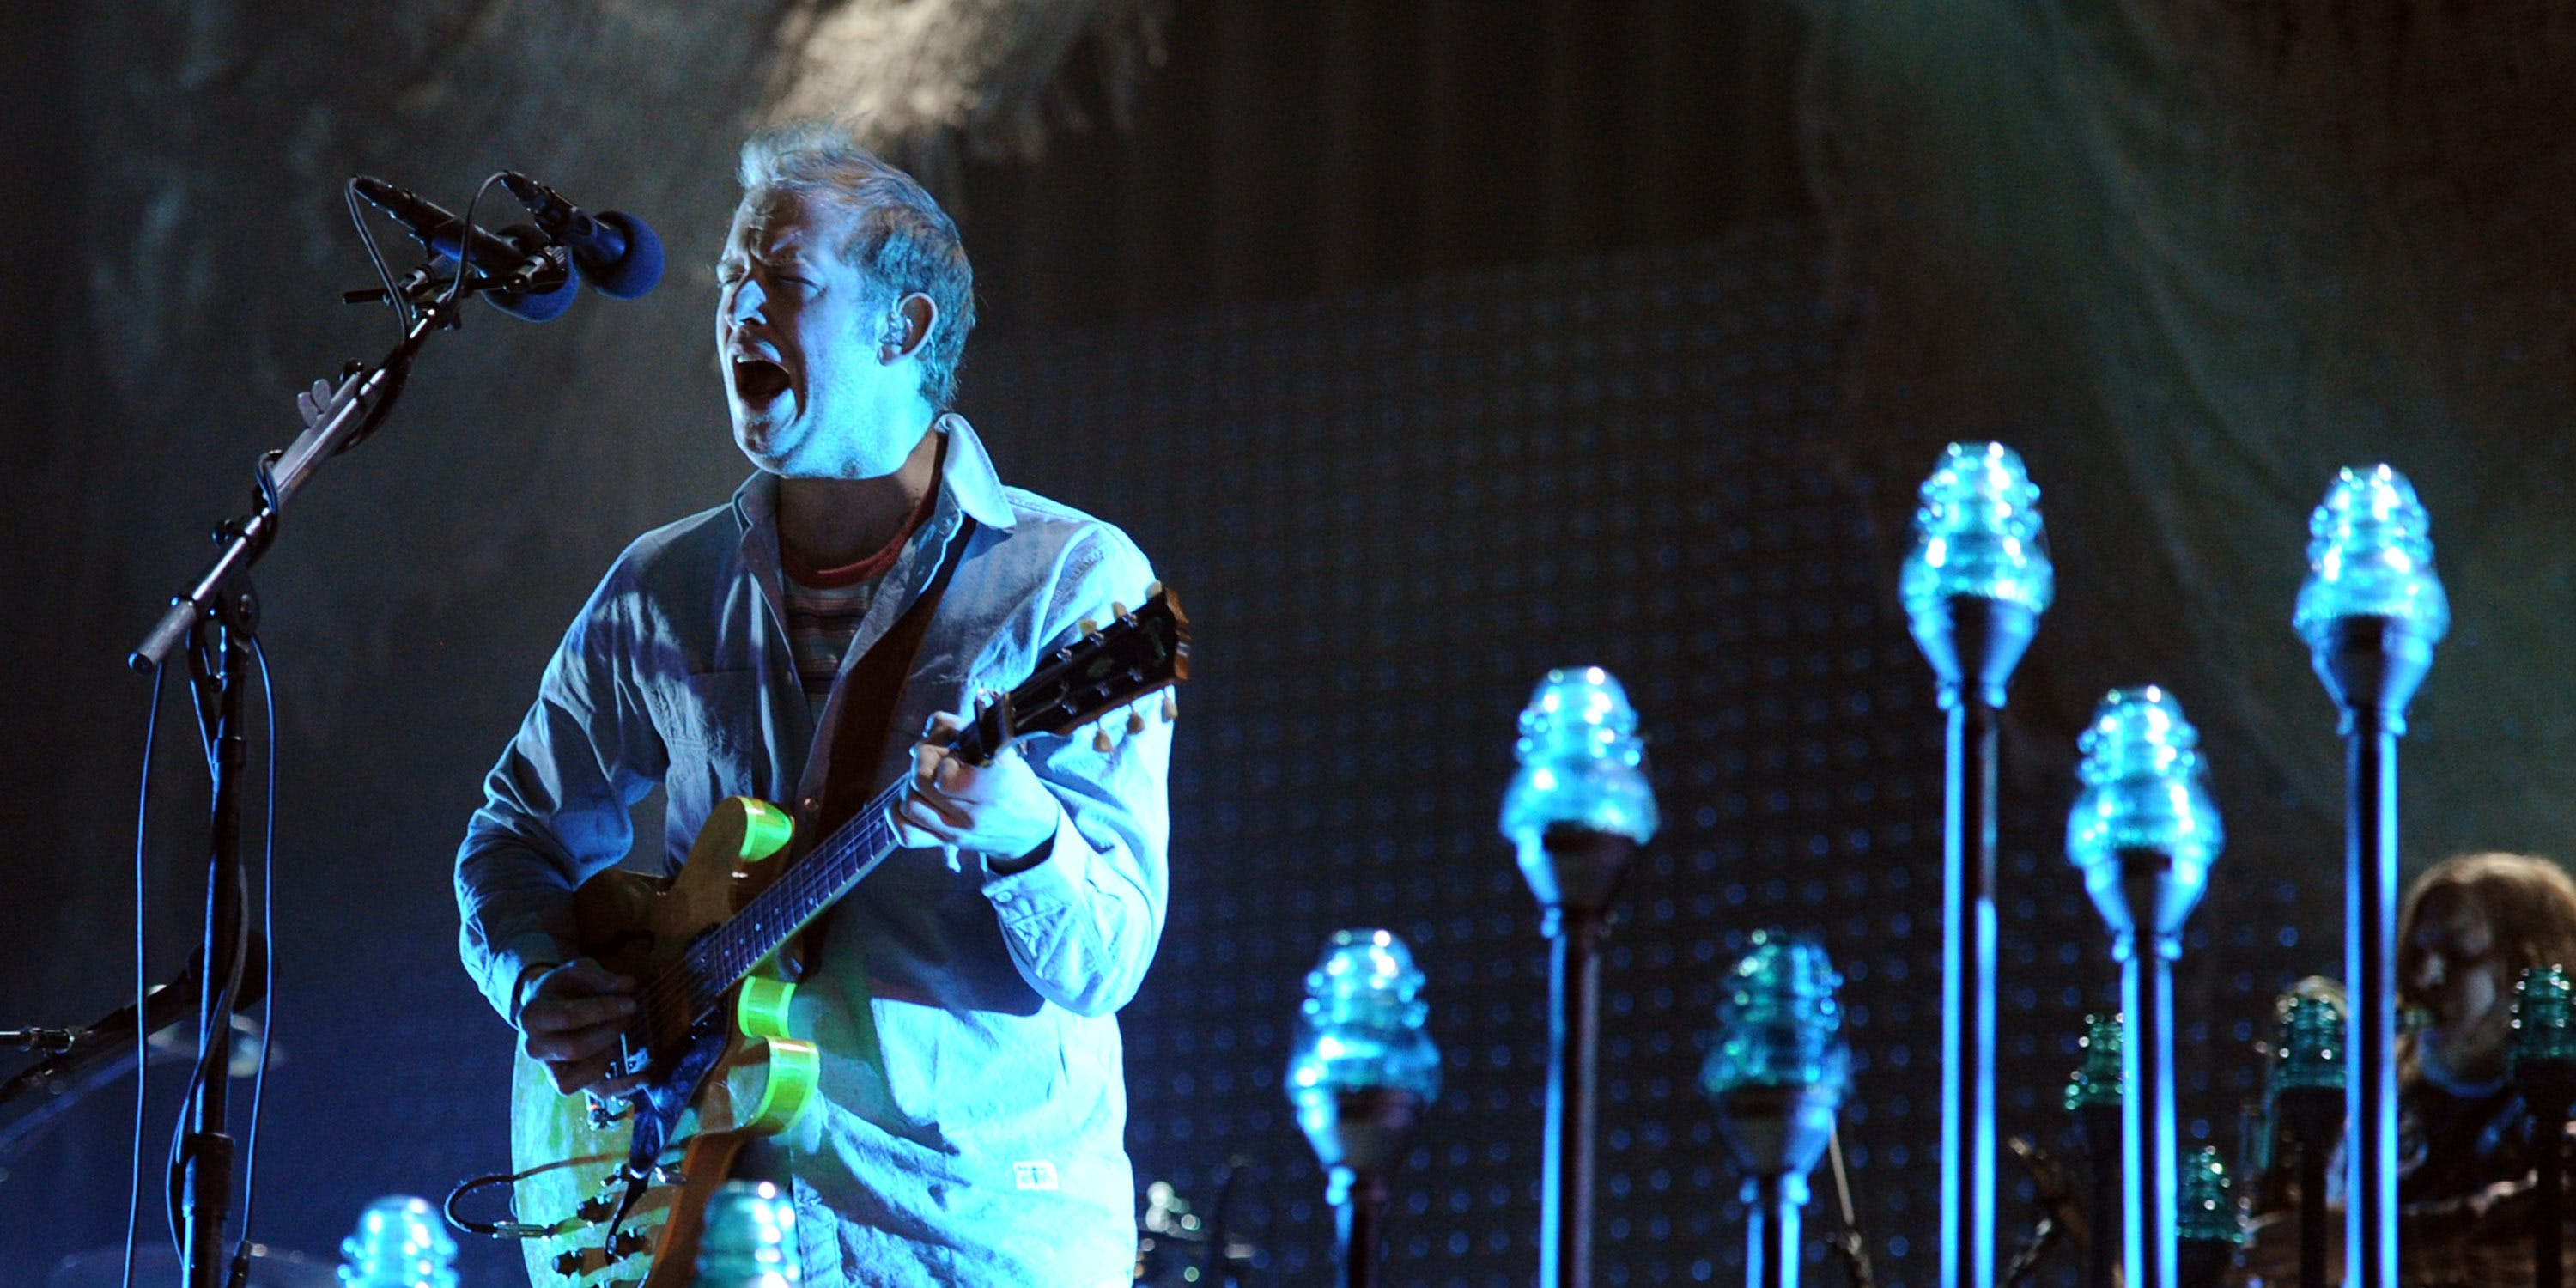 INDIO, CA - APRIL 14:  Musician Justin Vernon of Bon Iver performs onstage during day 2 of the 2012 Coachella Valley Music & Arts Festival at the Empire Polo Field on April 14, 2012 in Indio, California.  (Photo by Kevin Winter/Getty Images for Coachella)